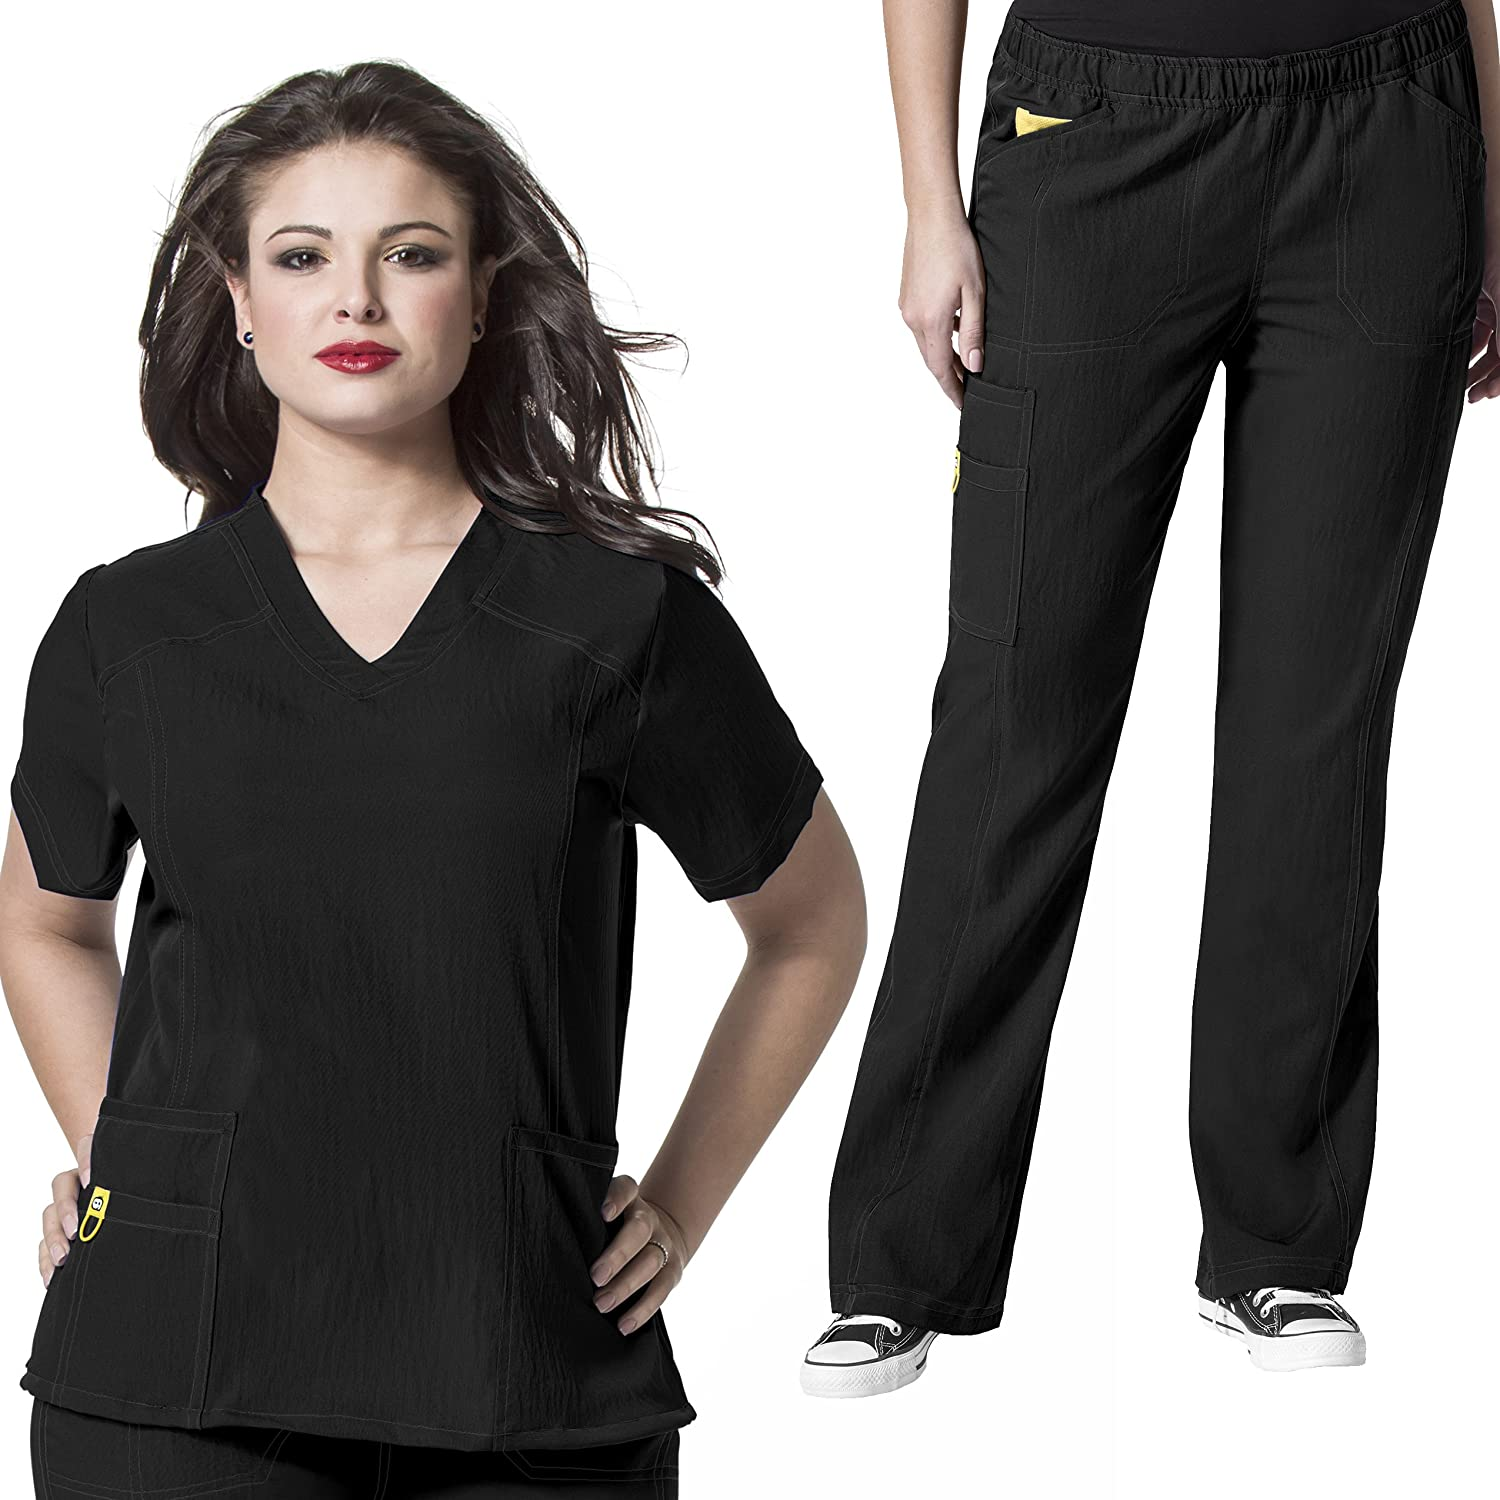 f30551aa0273d Amazon.com   PLUS SIZE 1X - 5X  WonderWink Womens Curved V-Nect Top   Boot  Cut Cargo Pant Scrub Set + FREE GIFT  Clothing